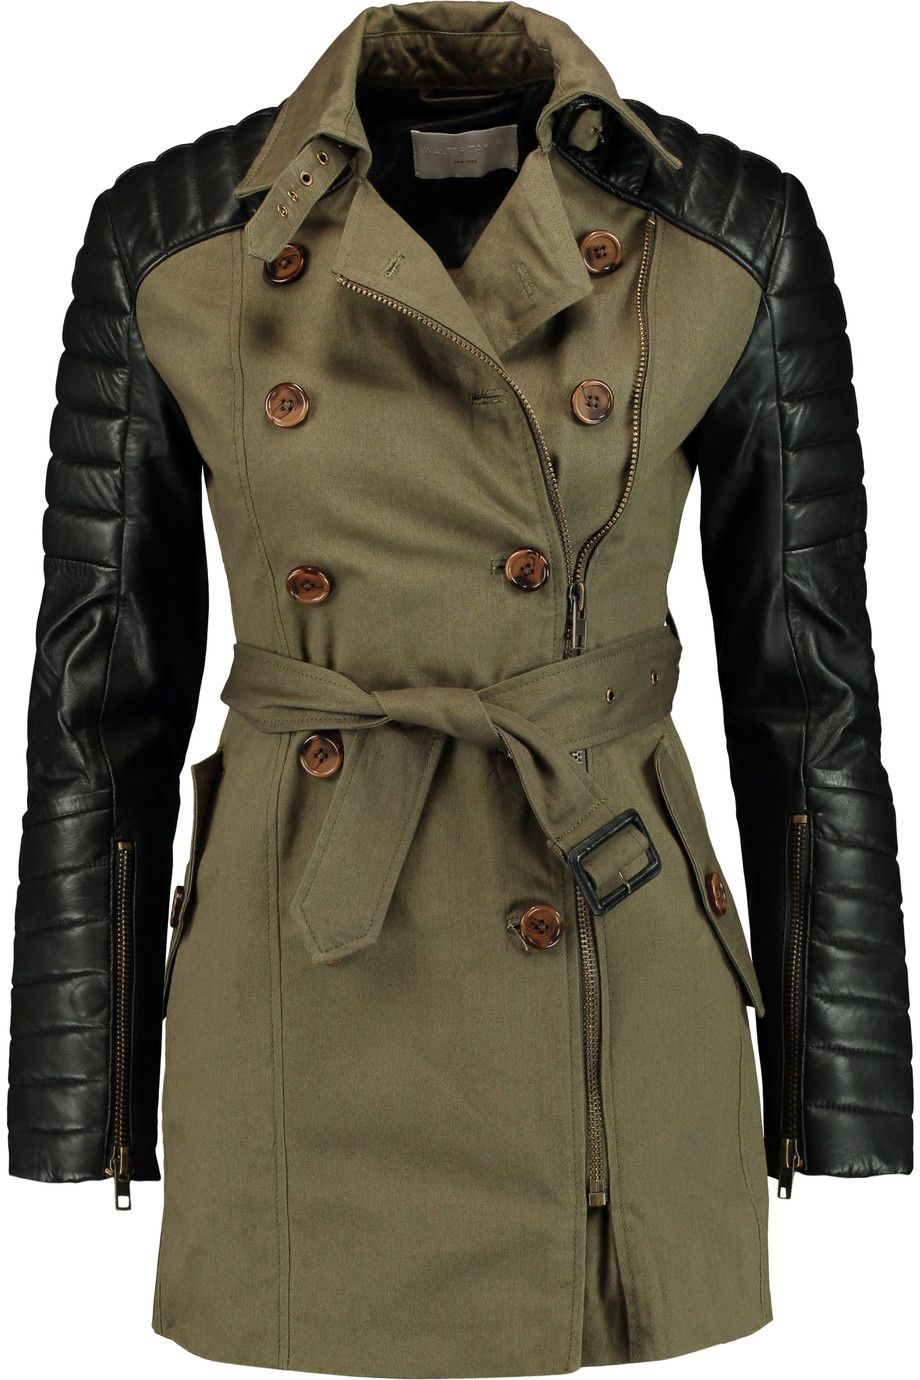 Walter Baker Jacket Olive trench coat, Army green coat